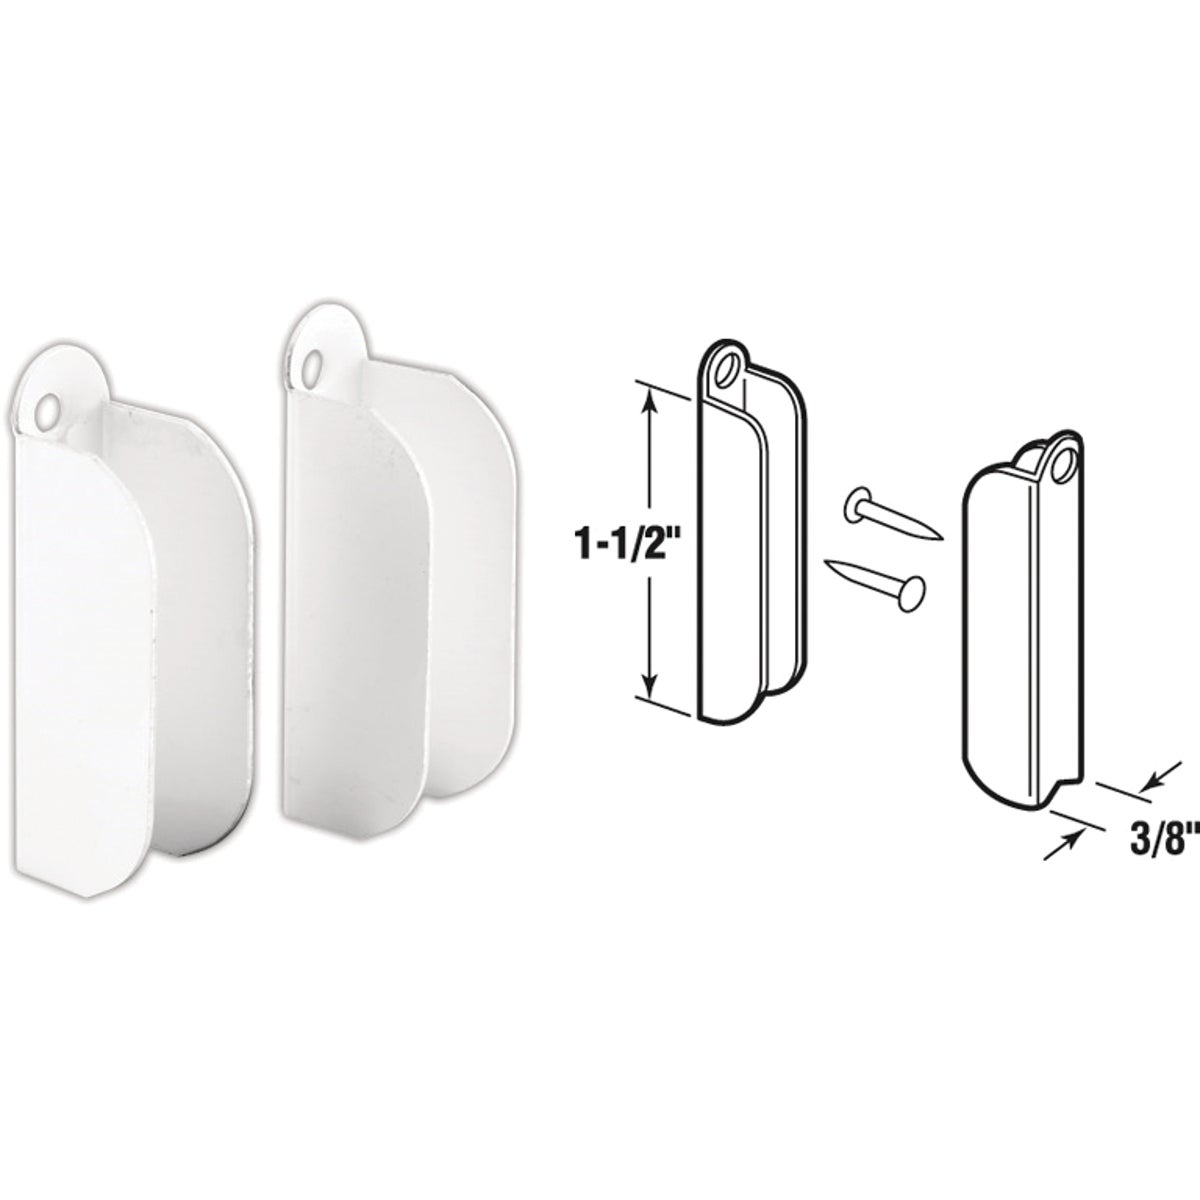 "6PK 3/8"" WHT TOP HANGER - PL8106 by Prime Line Products"